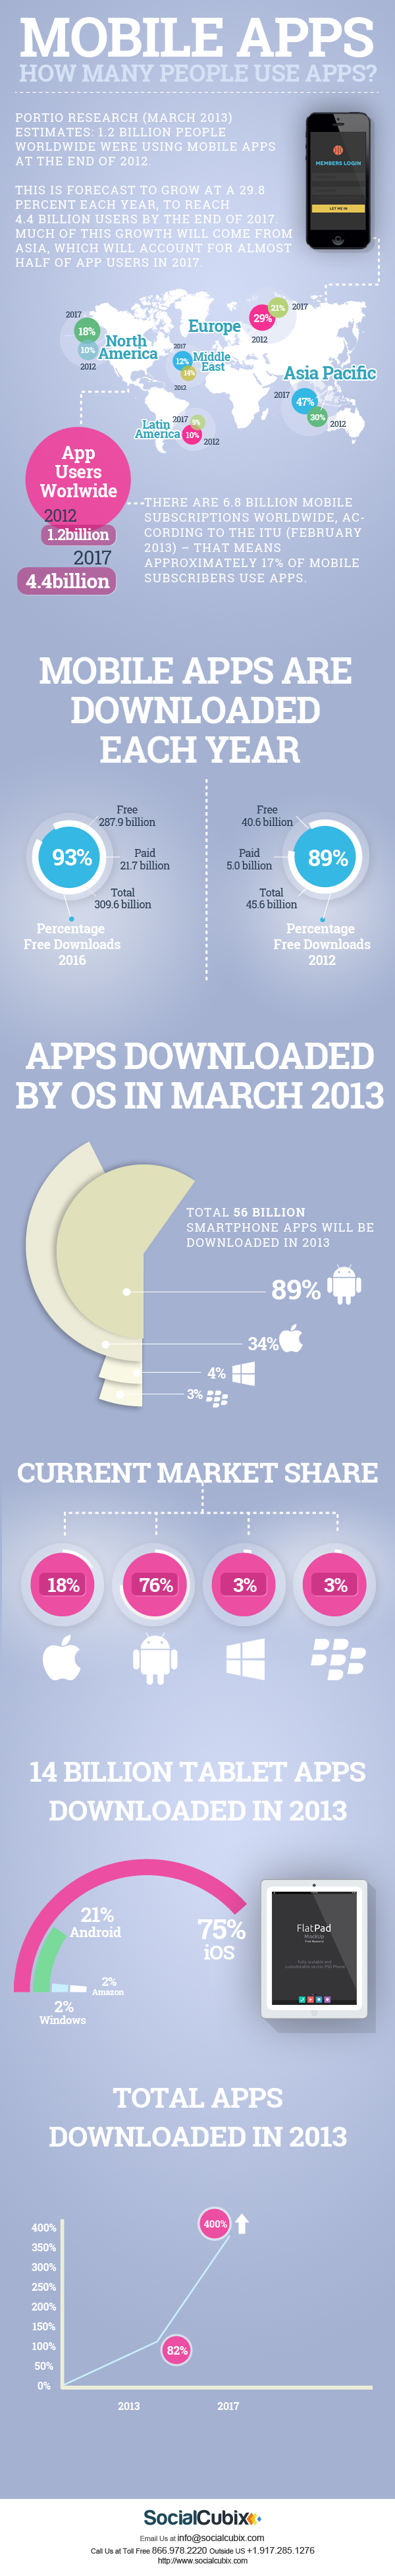 How many people use apps?